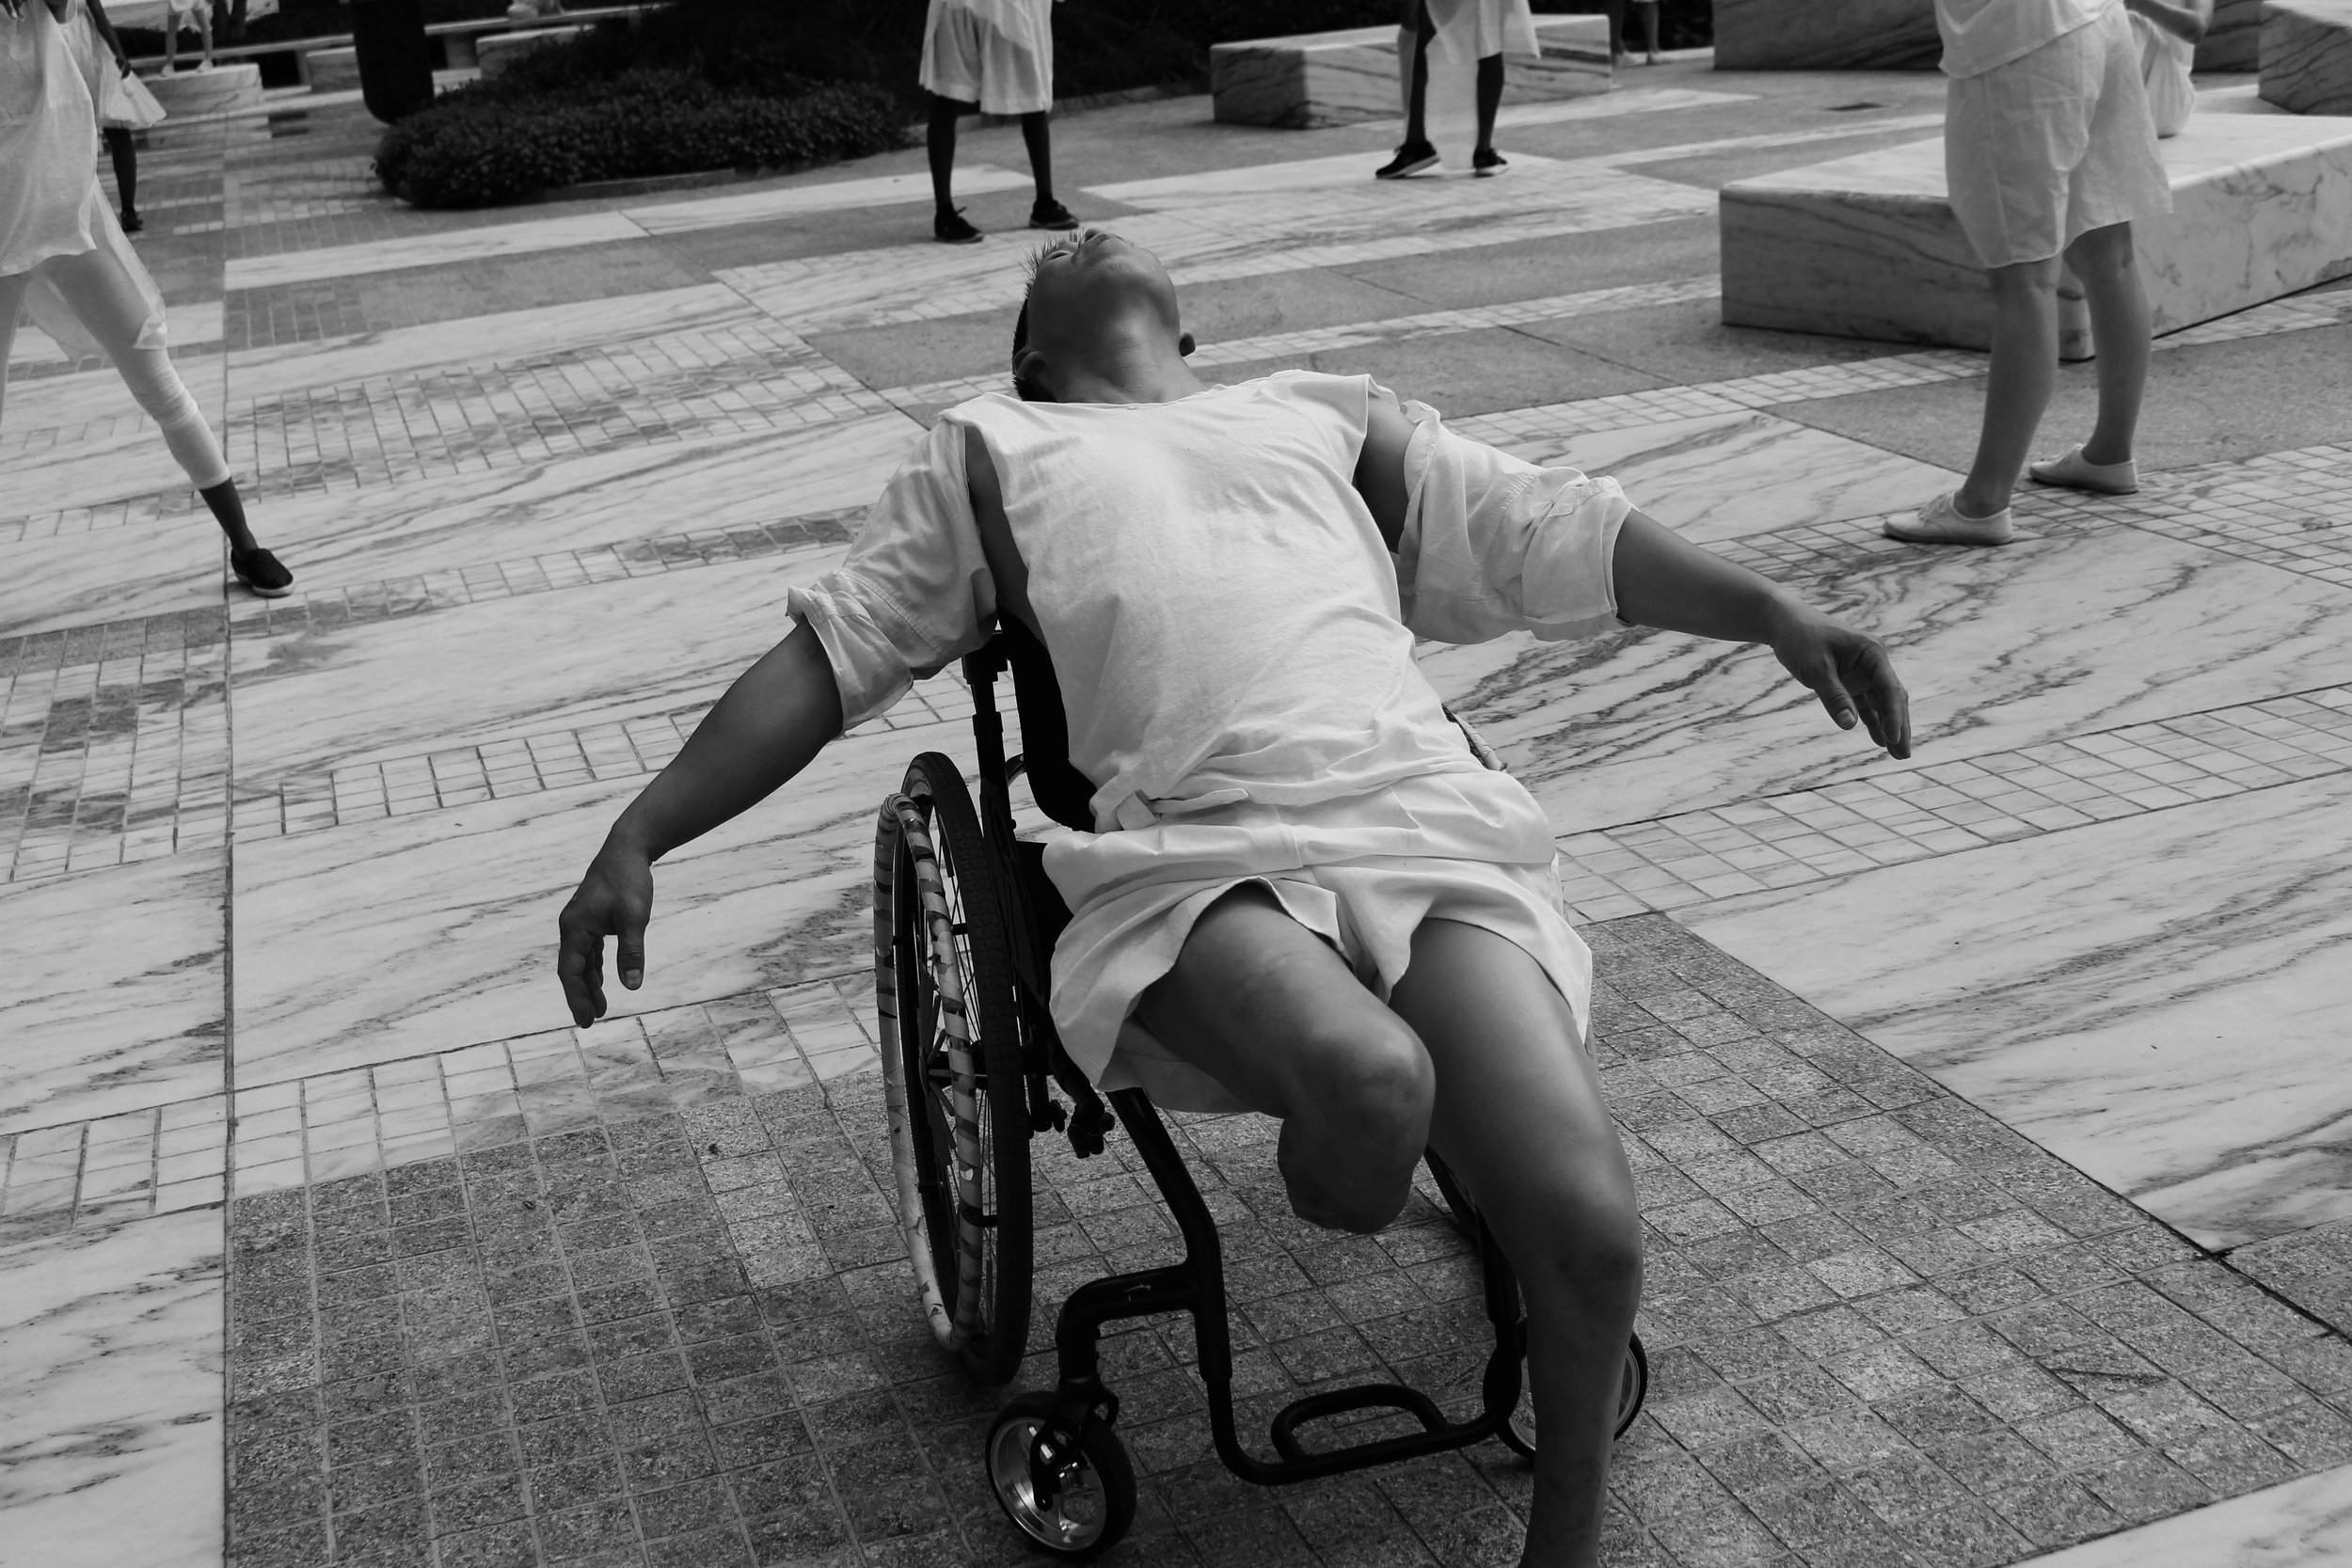 black and white photo: a man sitting back in his wheelchair, he is missing two legs, his head is back and his arms outstretched